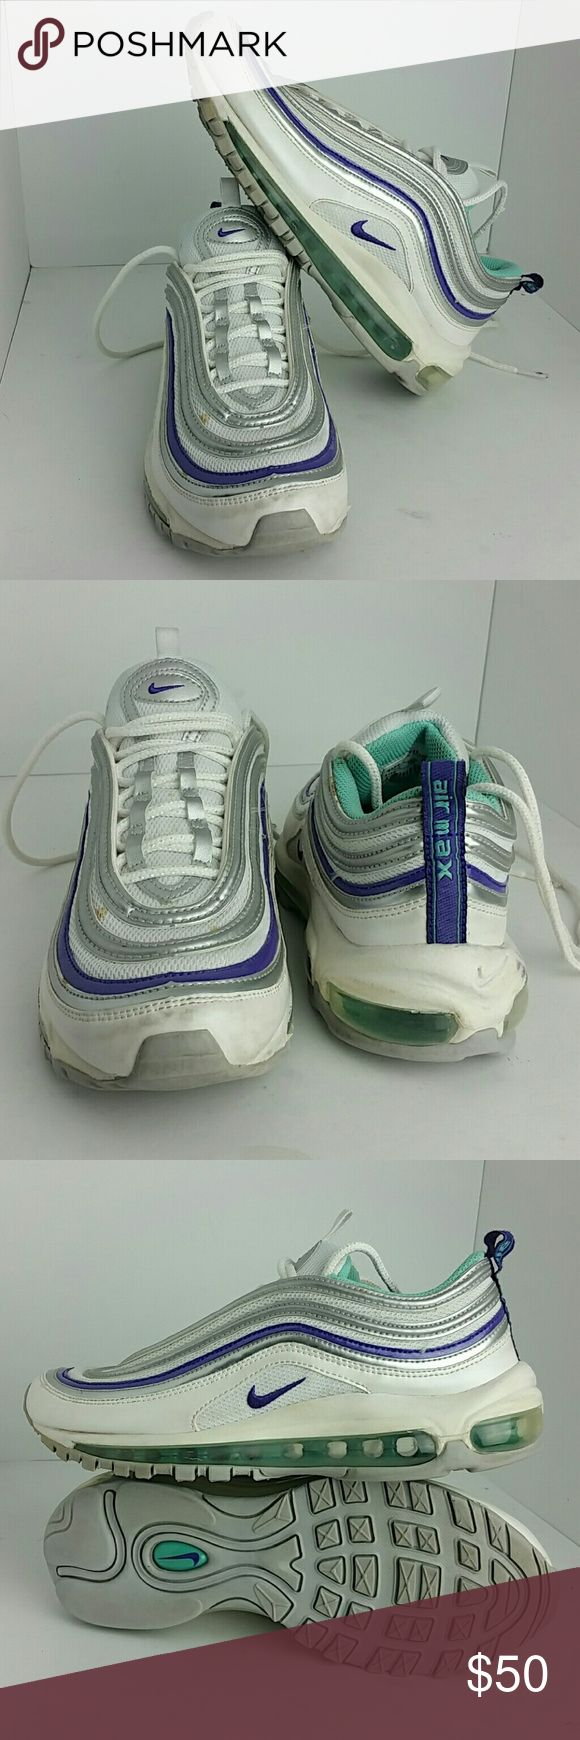 NIKE AIR MAX 97 CL WOMEN/YOUTH SHOES VERY CLEAN INSIDE-OUT   THIS IS A YOUTH SIZE 5.5Y WHICH IS WOMEN SIZE 7  SKE # BK NIKE Shoes Athletic Shoes